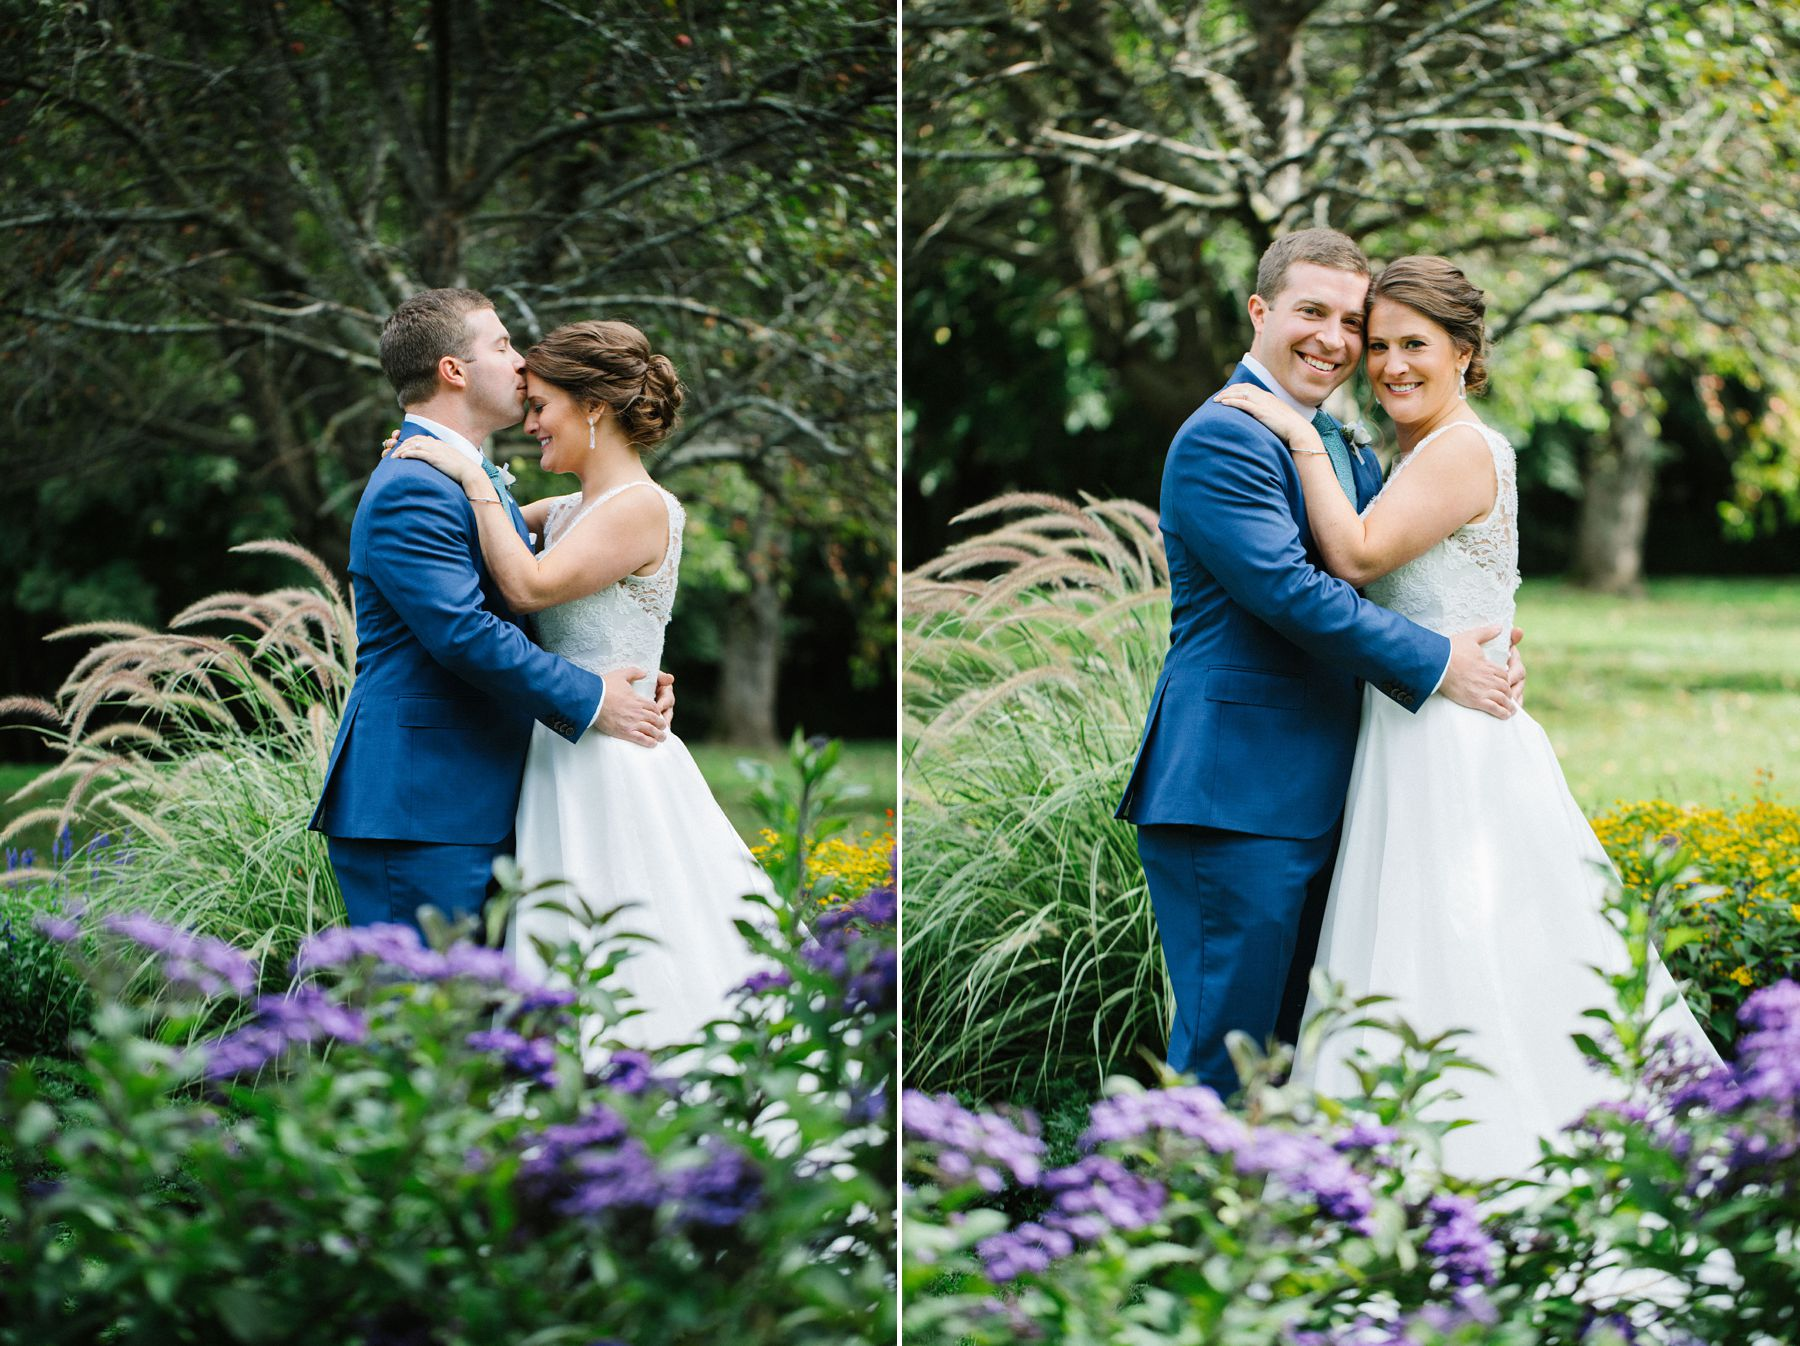 minnesotaweddingphotographer_2596.jpg